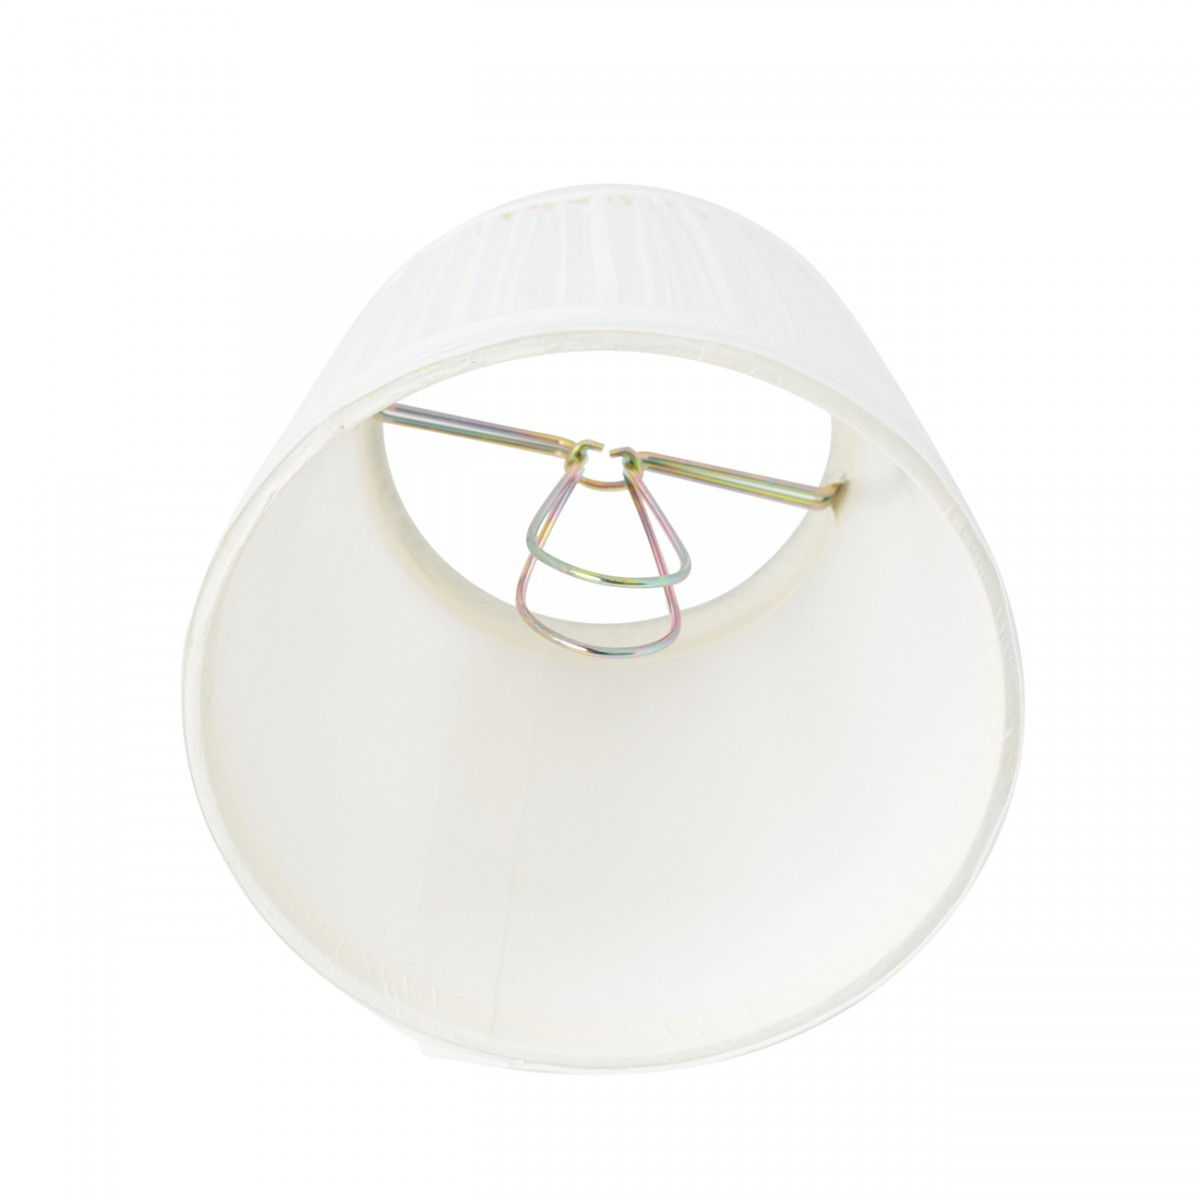 Lamp Shade White Fabric 4 116 Mini Clip On Clip On Lamp Shades Small White Clipon Lamp Shade Candelabra Lamp Shade